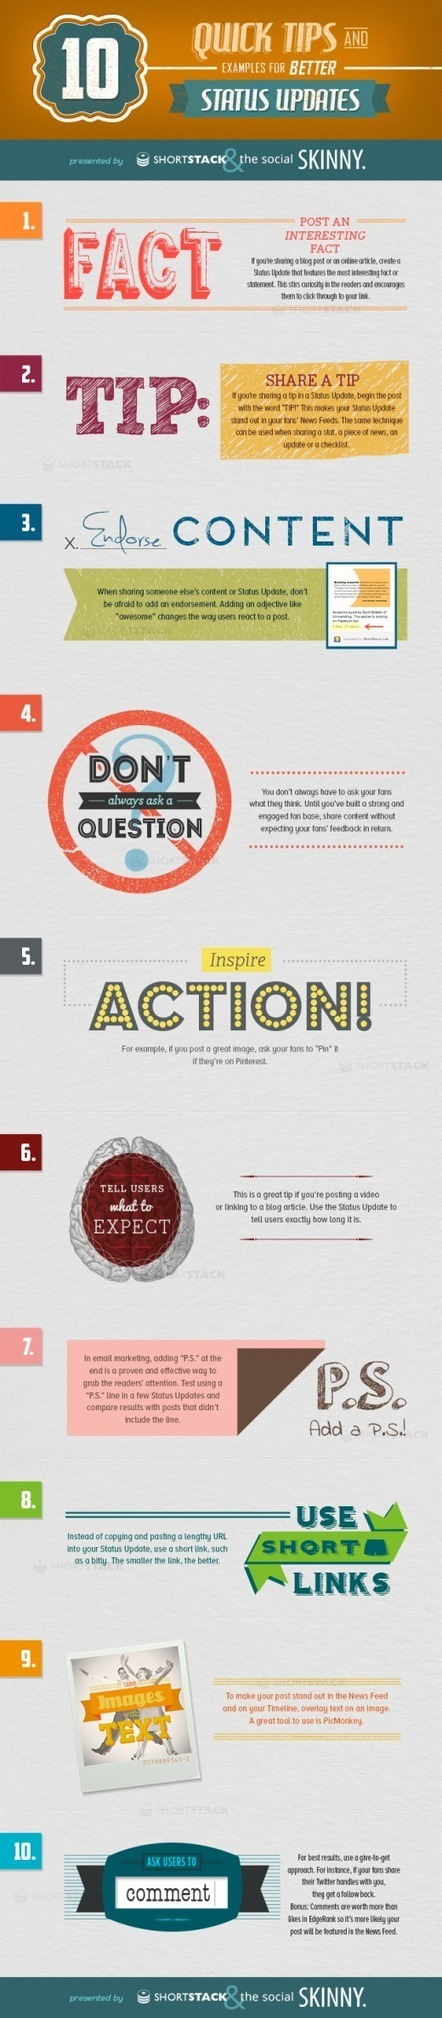 10 Quick Tips and Examples for Posting Better Status Updates [infographic] | OK! Marketing | Scoop.it